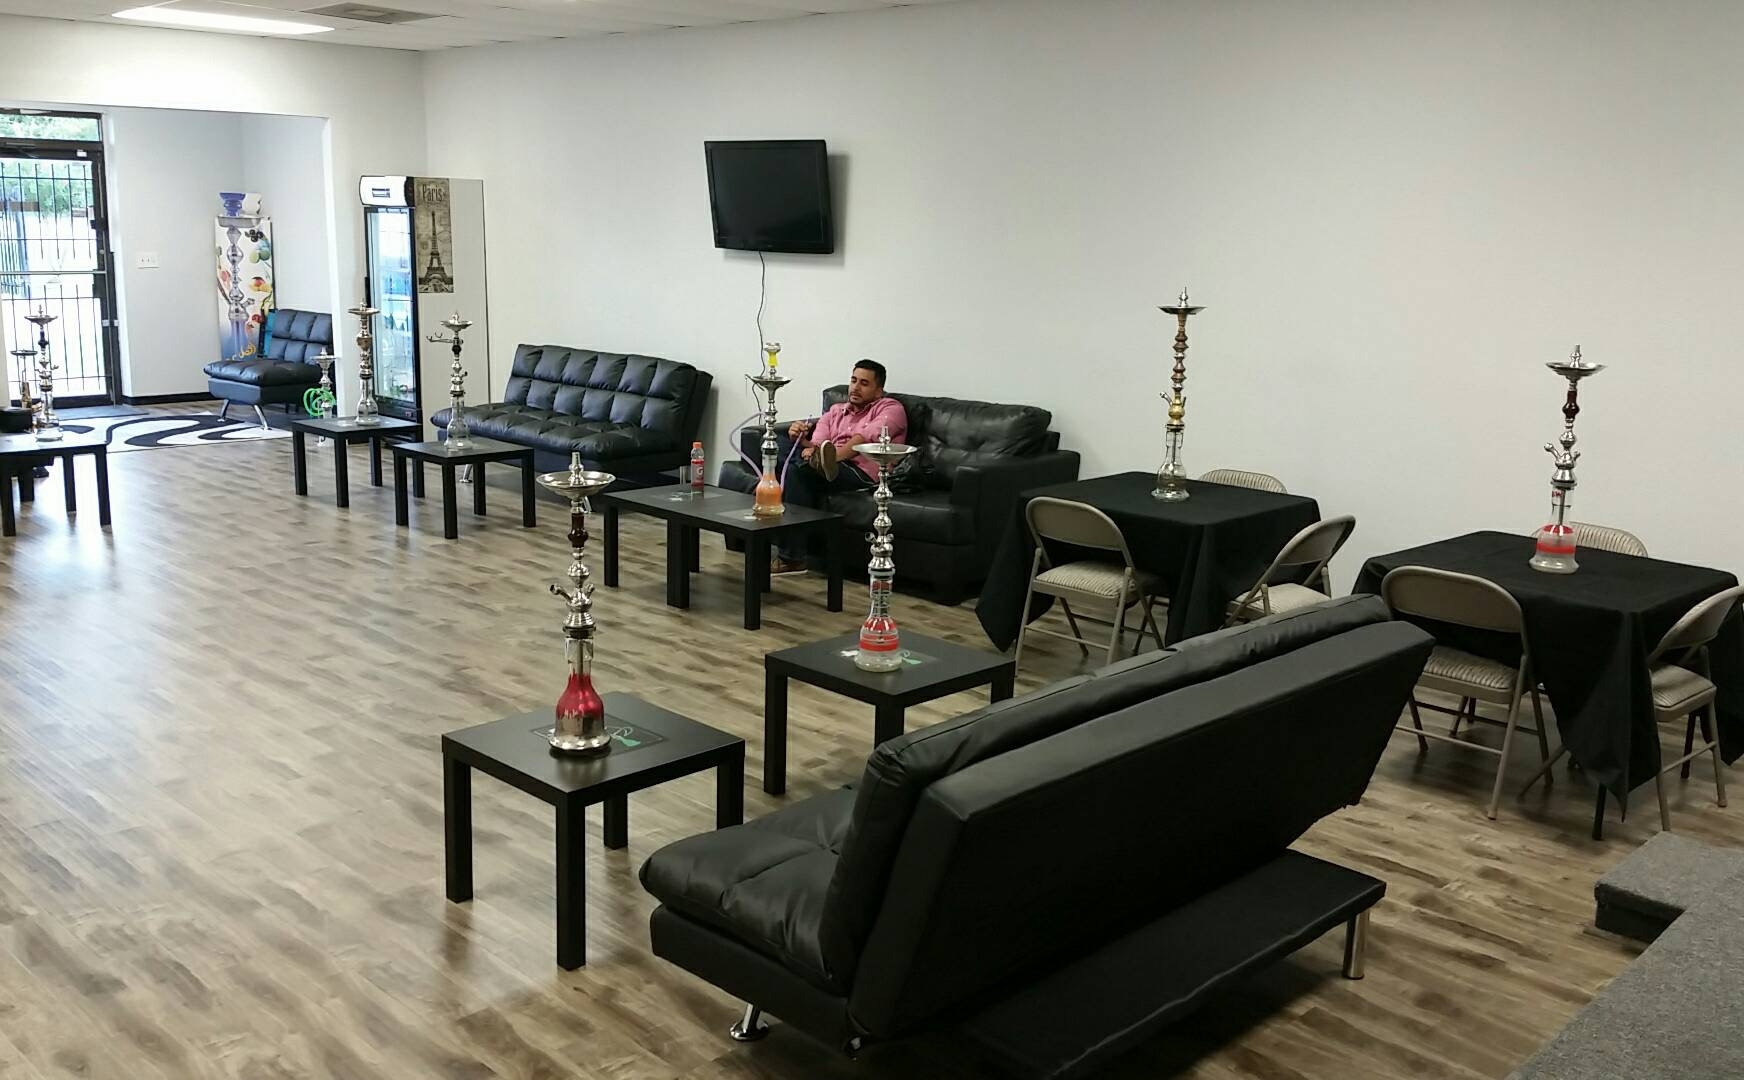 texas hookah coupon Get reviews, hours, directions, coupons and more for texas hookah at 8413 almeda rd ste q3, houston, tx search for other convenience stores in houston on ypcom.